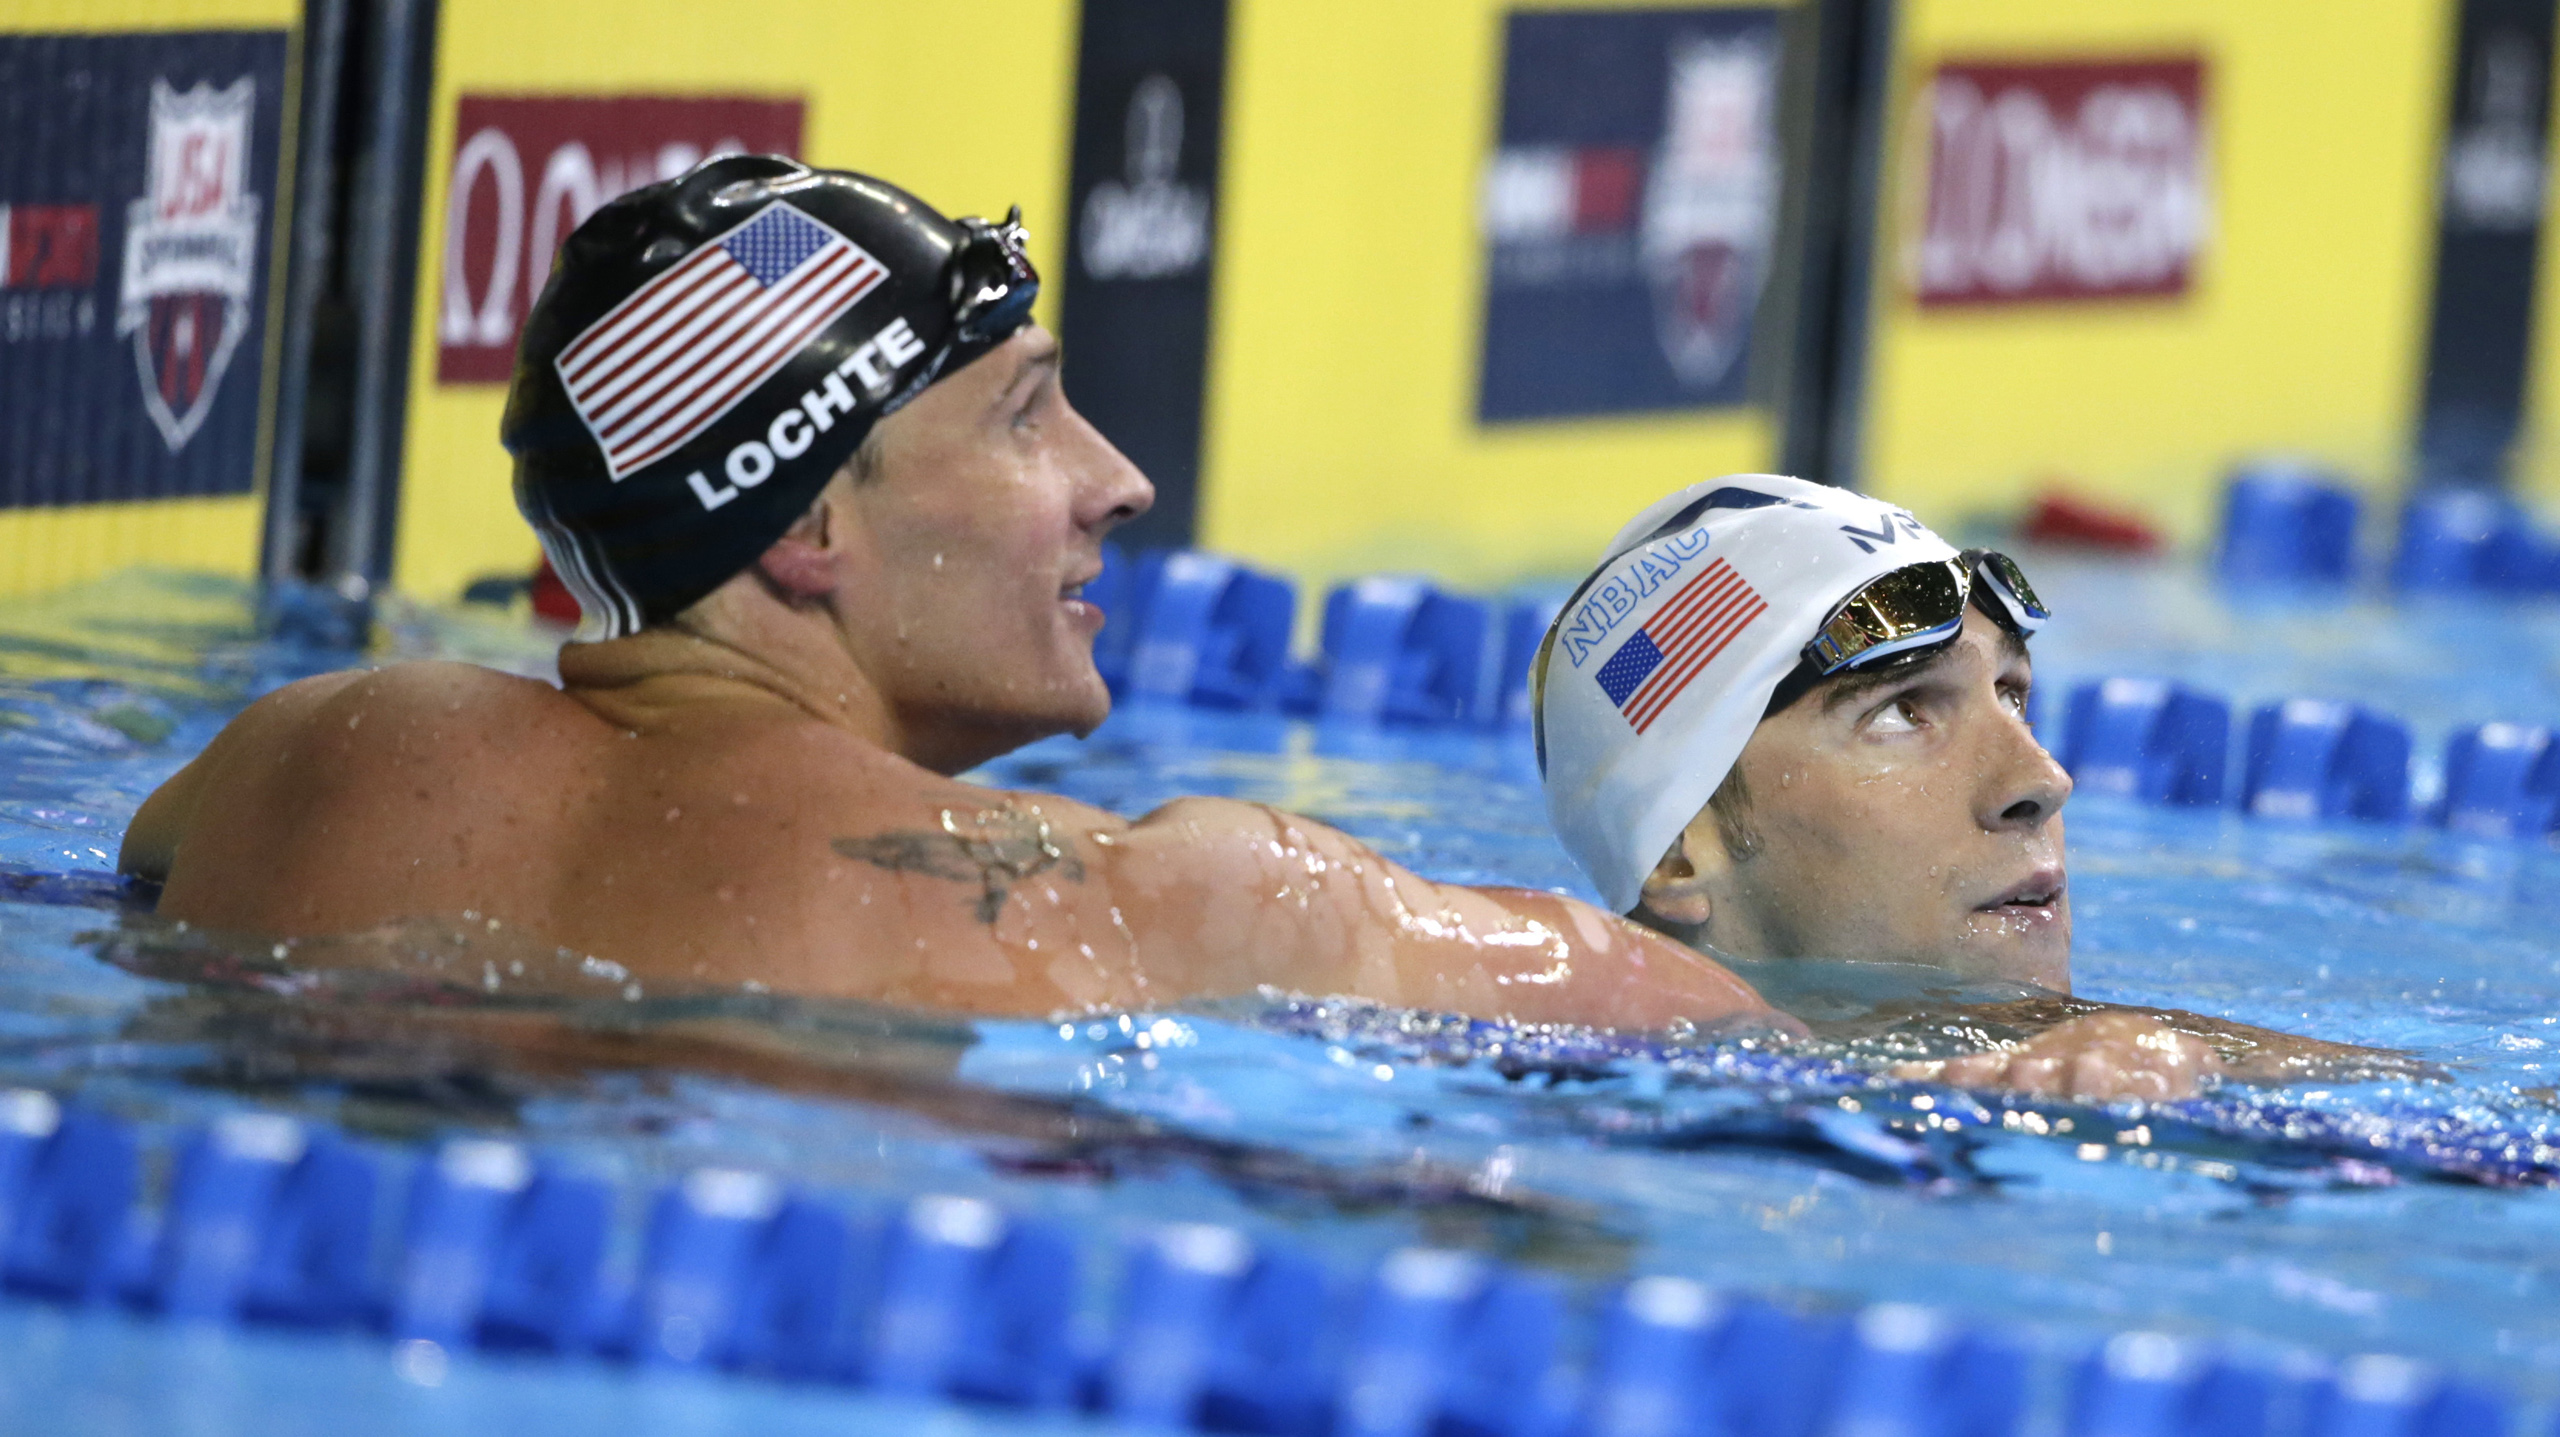 Michael Phelps, right, reacts with Ryan Lochte, left, after winning the men's 200-meter individual medley final at the U.S. Olympic swimming trials, in Omaha, Neb. on July 1, 2016. Lochte finished in second place.